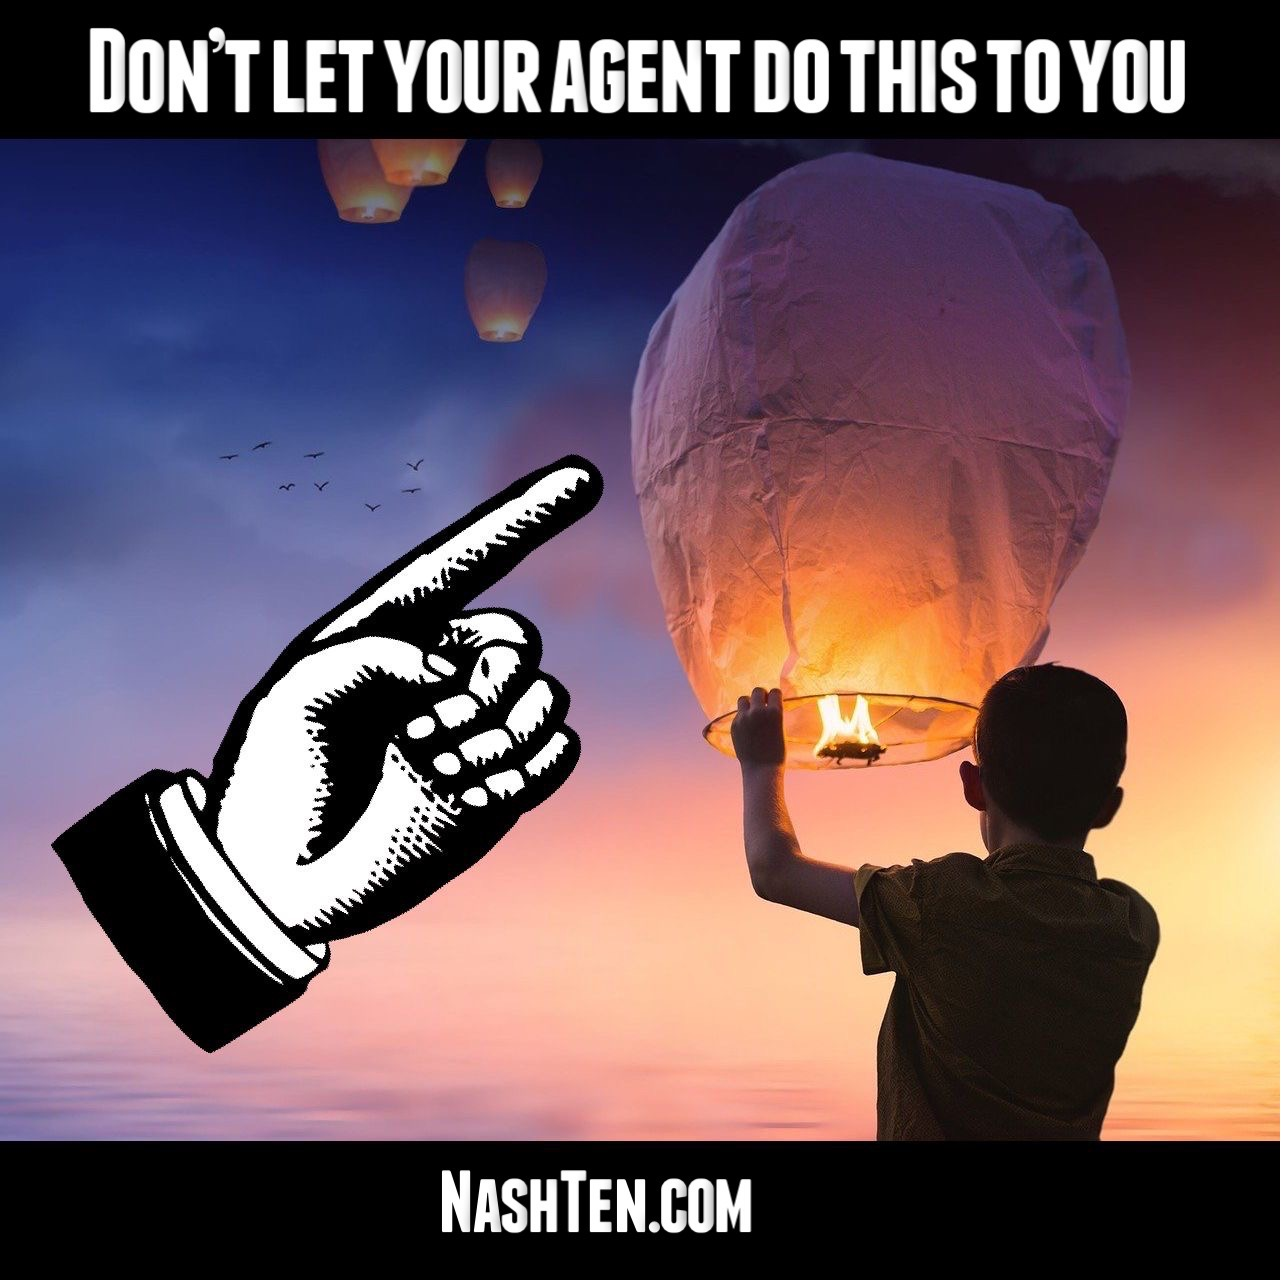 Don't let your agent do this to you